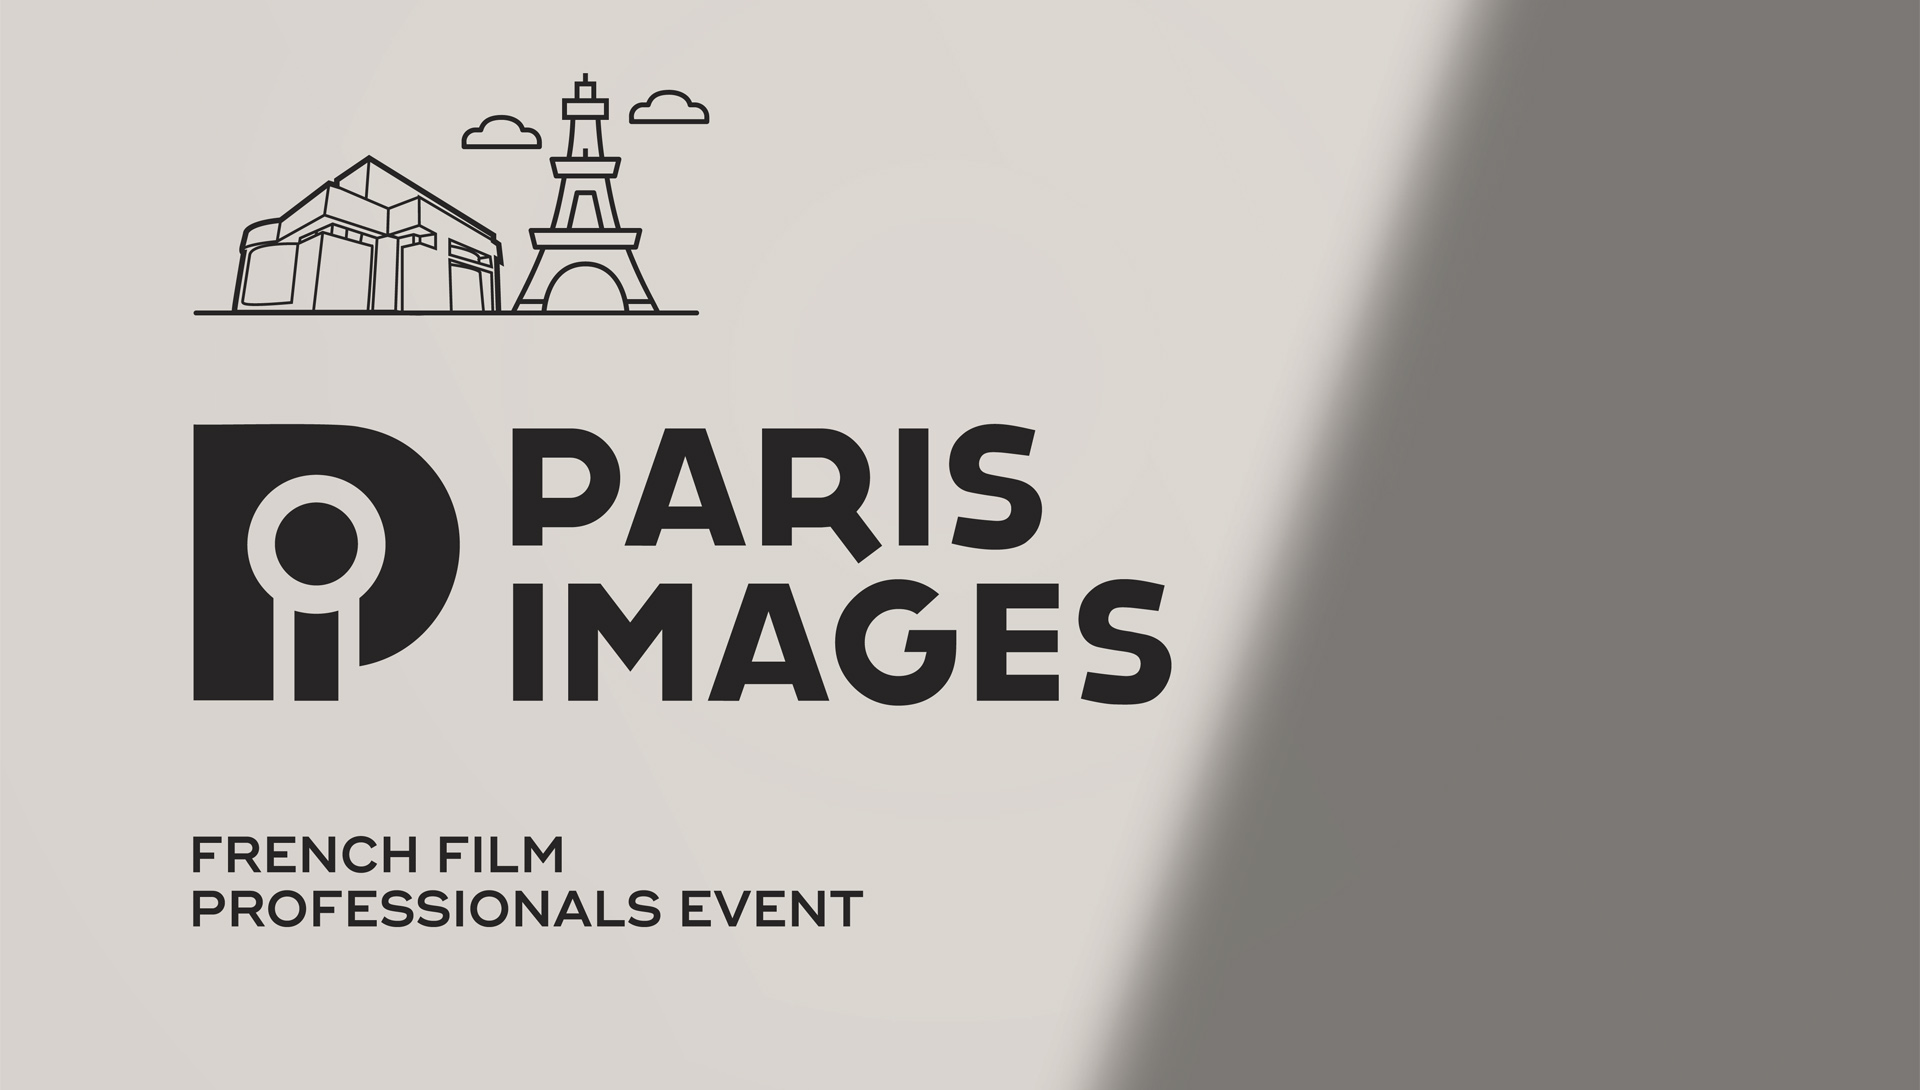 Affiche de Paris images 2021